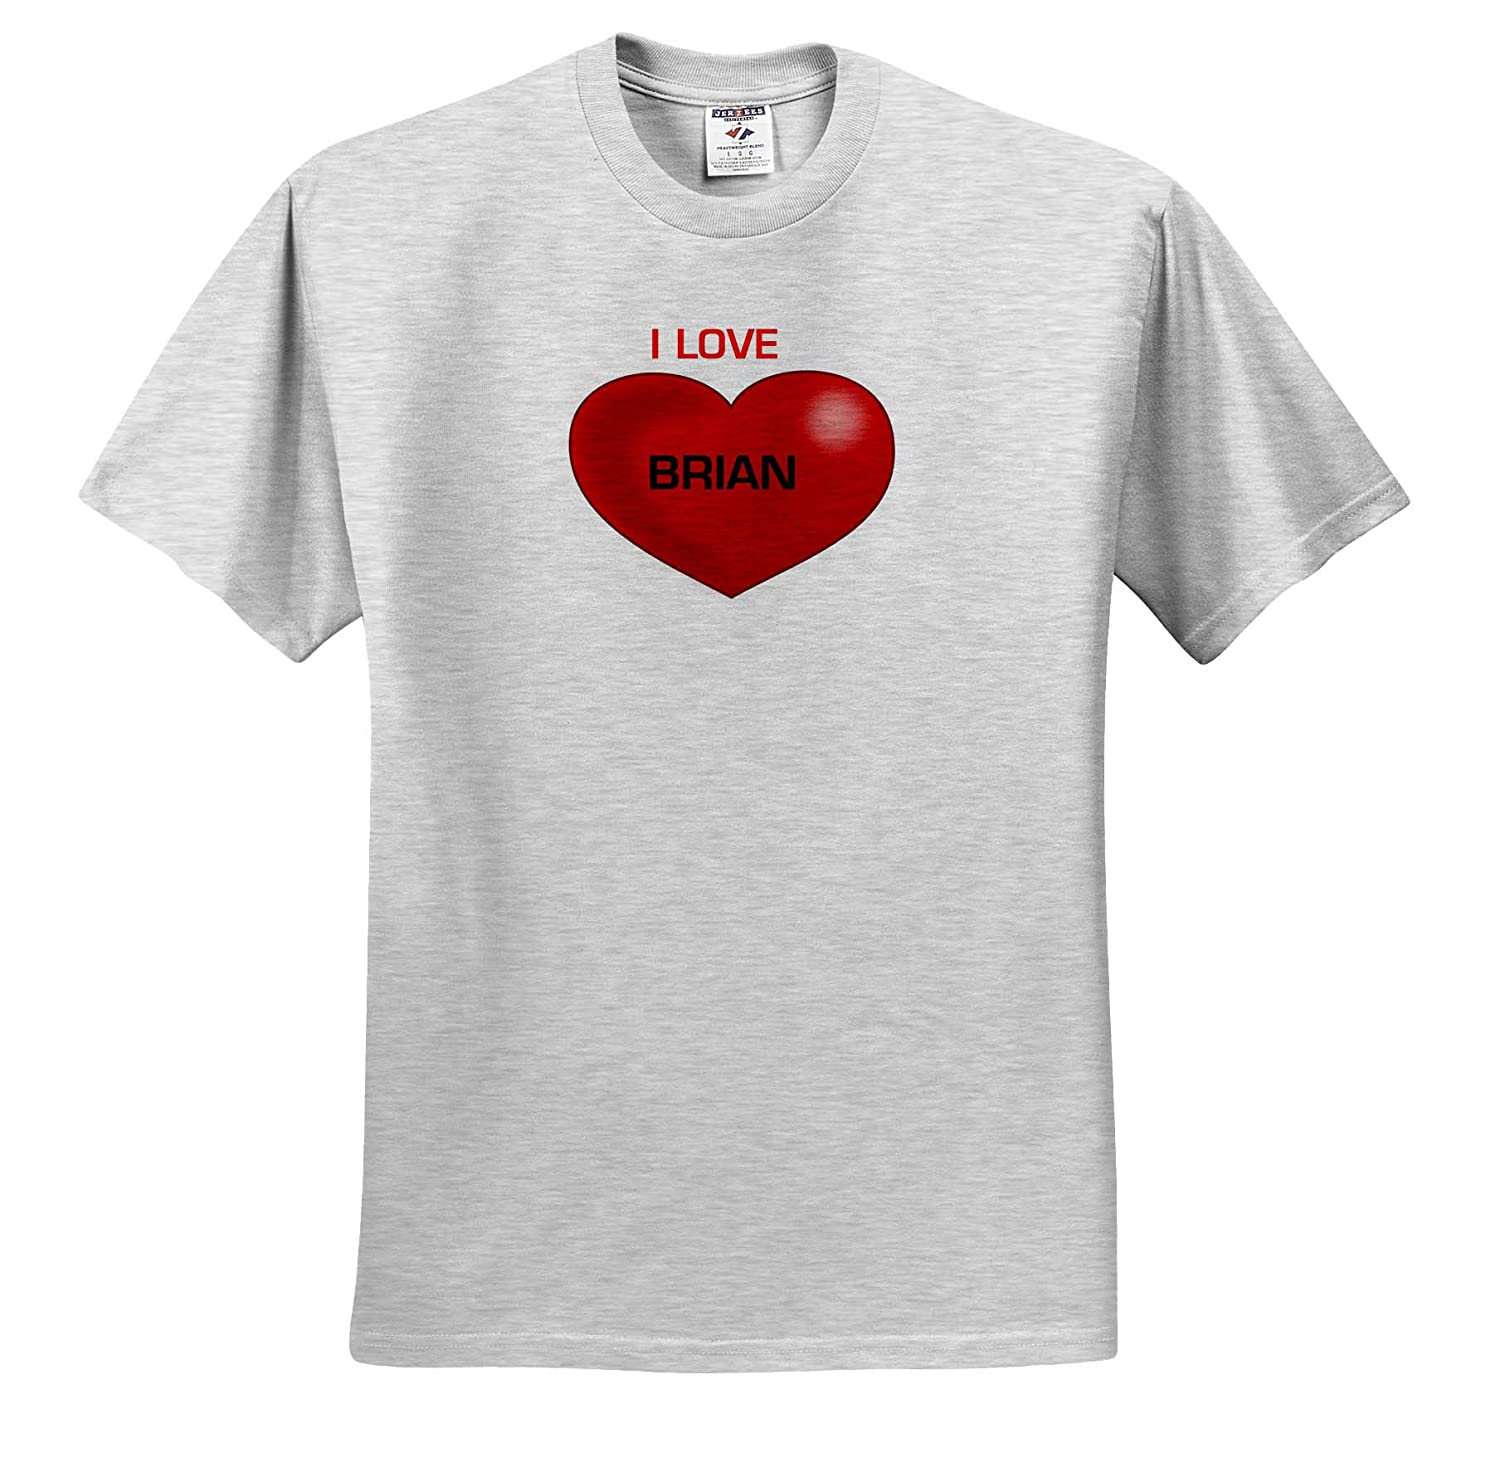 Love Hearts with Names T-Shirts 3dRose Lens Art by Florene Image of I Love Brian On Big Red Heart